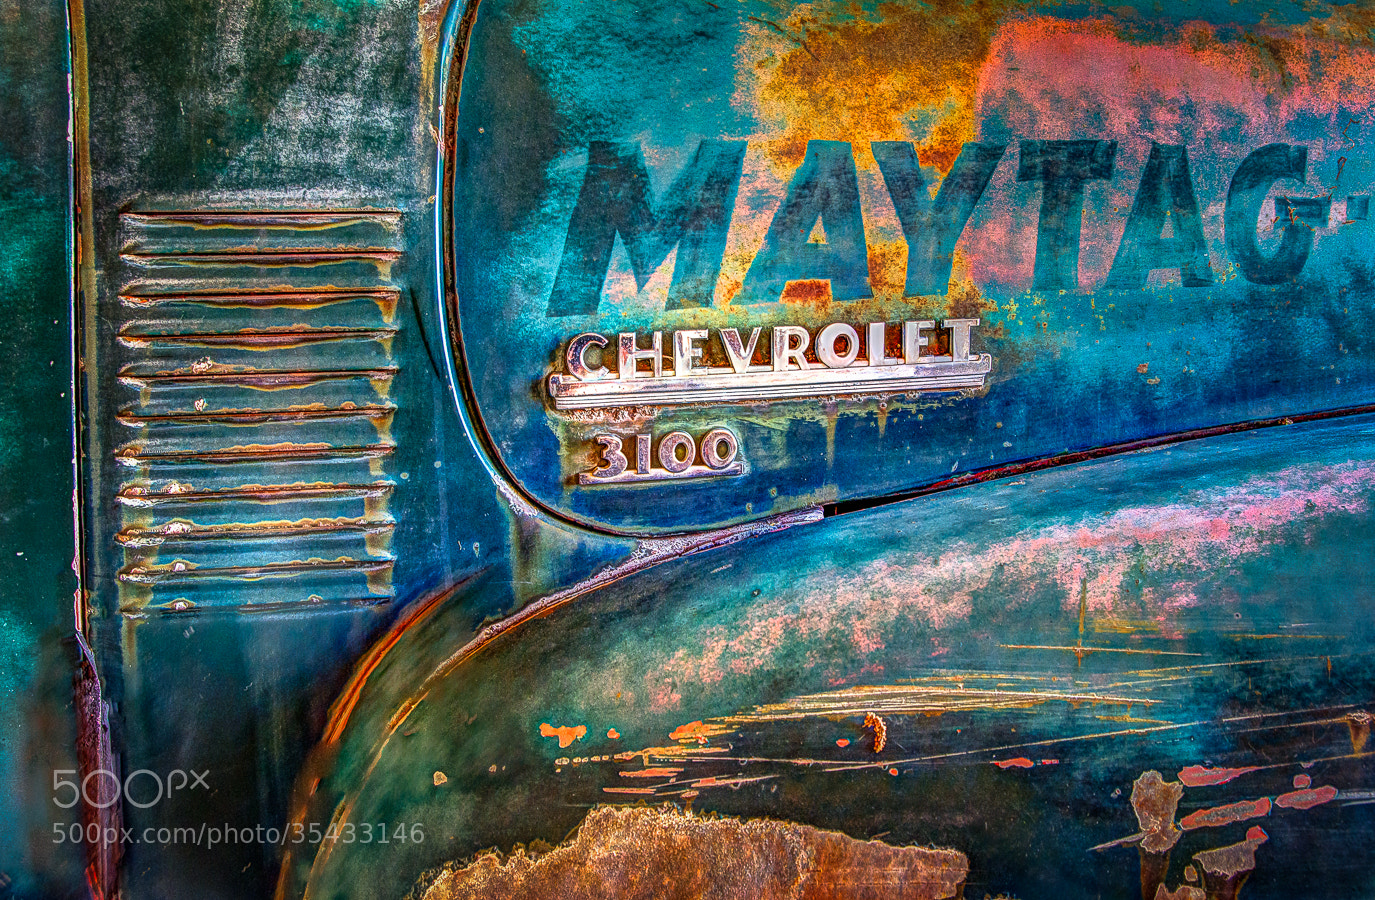 Photograph Maytag Chevrolet by Stevan Tontich on 500px